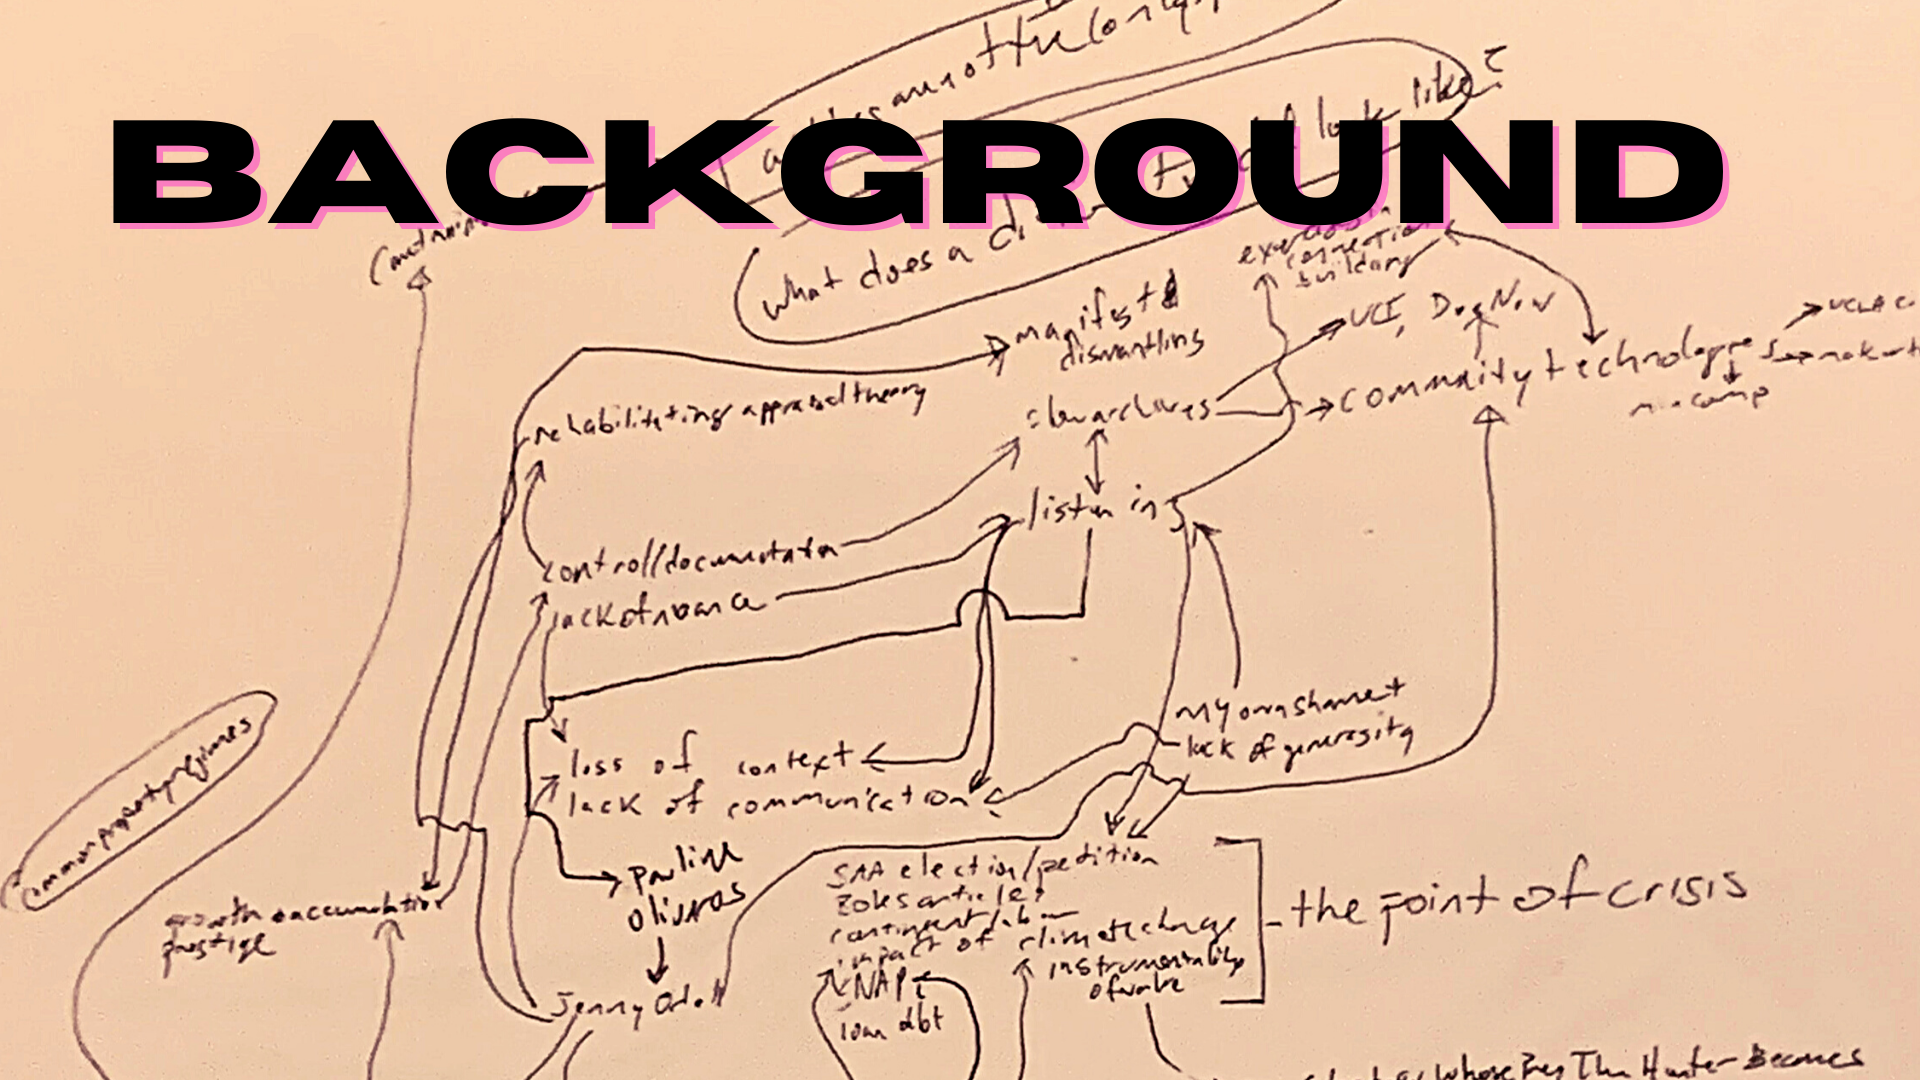 slide titled 'background': depicts a mindmap of related topics